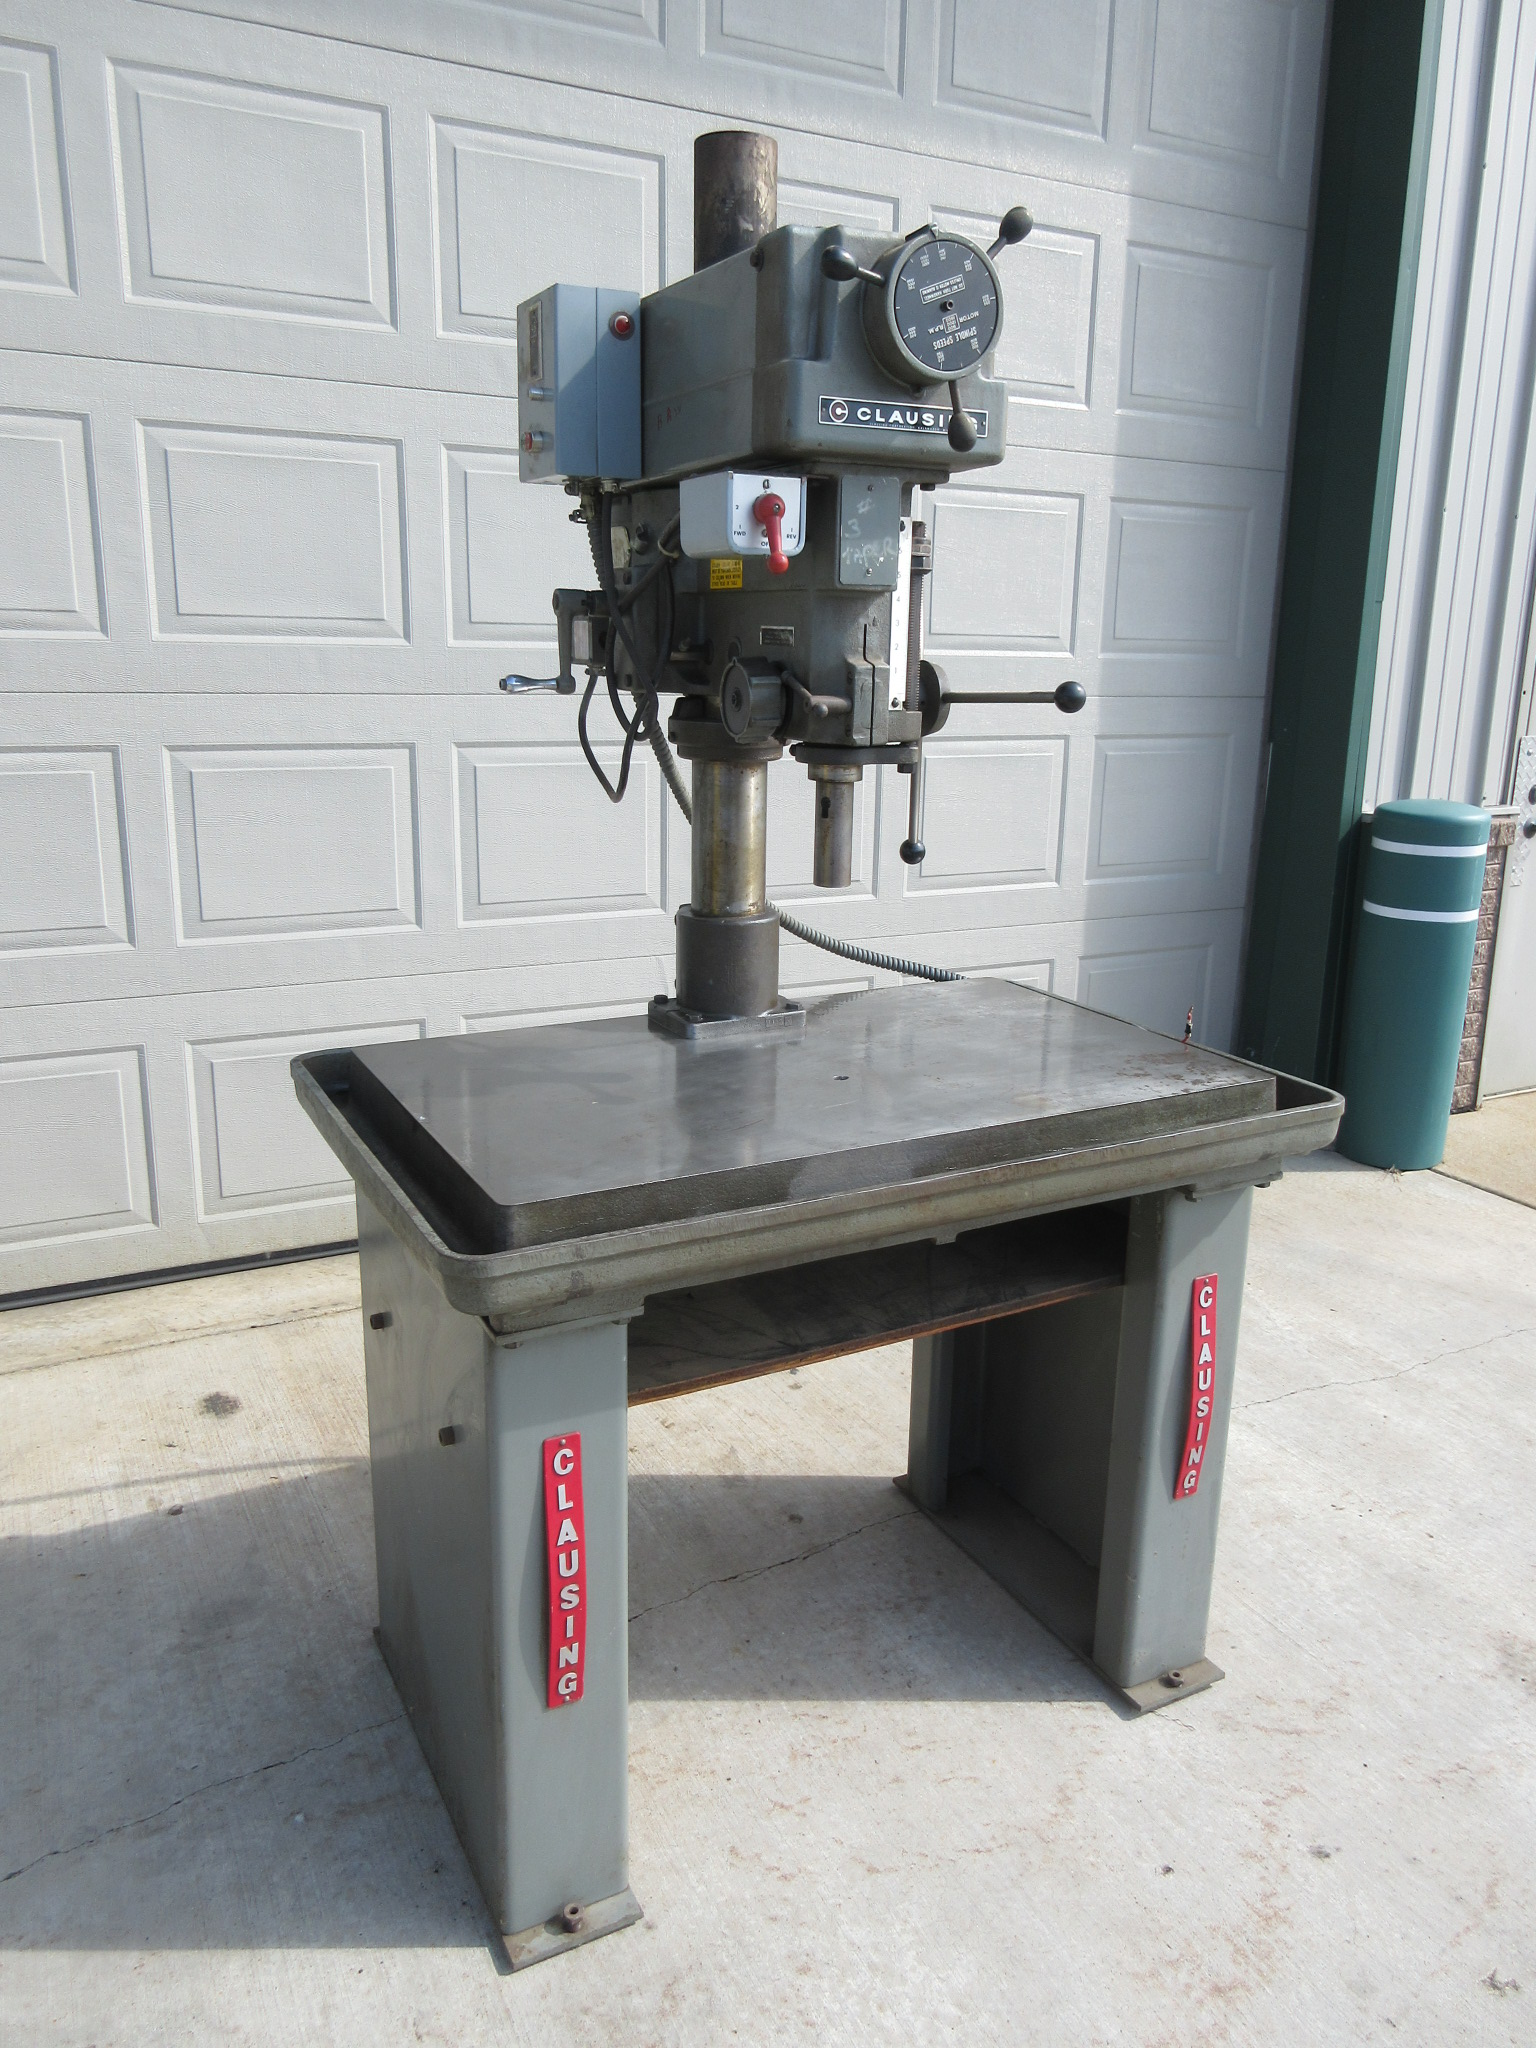 LARGE TABLE, VARIABLE SPEED, 3MT, 150-2,000 RPM, REVERSING SWITCH FOR TAPPING